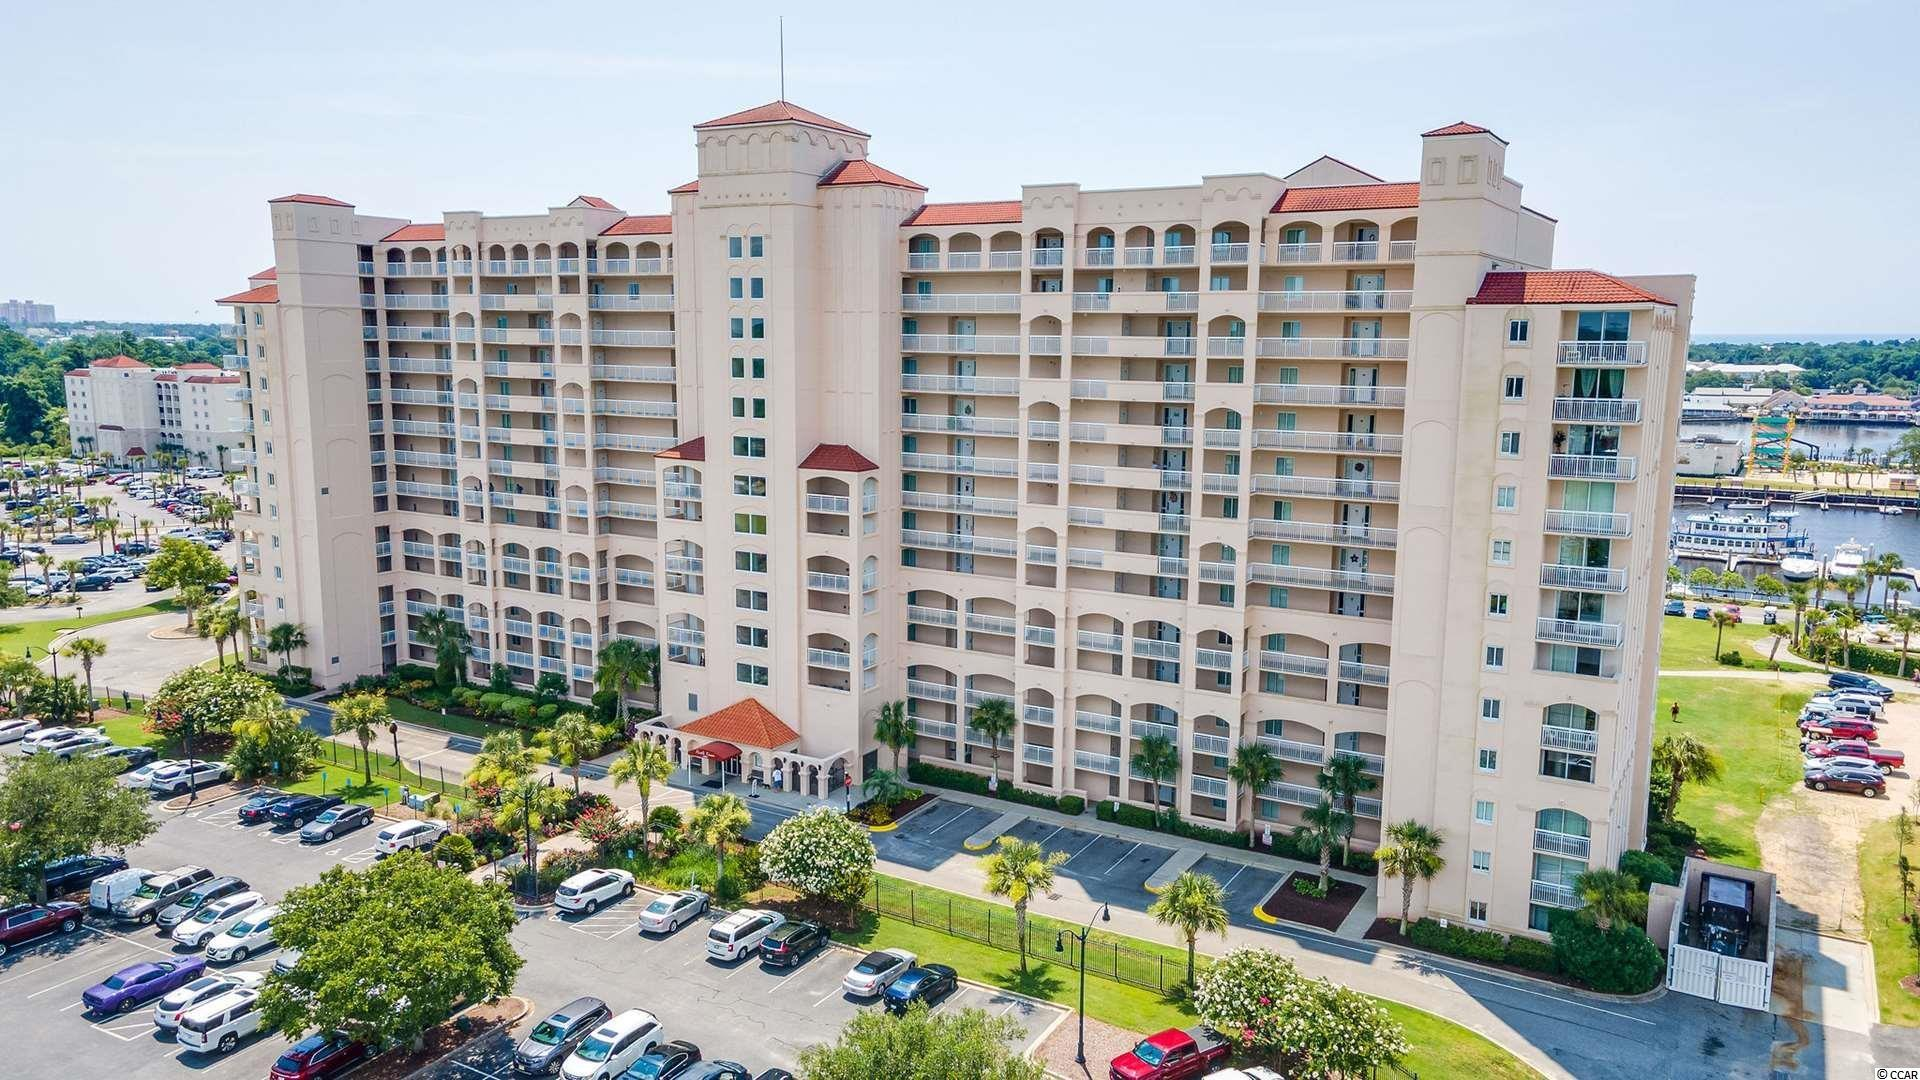 Welcome to the lovely North Tower @ Barefoot Resort. This owner-occupied, never rented unit is in immaculate condition. Carrier HVAC installed in 2020. New Whirpool washer and Dryer from 2020. GE Appliances (Slate/finger proof) and Garbage Disposal from May 2021. It has a great open floor plan waiting for you to add your personal touch. Great place to live or to vacation.  Investors also love it. The location, on the Intracoastal Waterway, near 4 championship Golf Courses and two clubhouses, the quality of the building, and the amenities, make this a desirable place. The Amenities include gated parking with space for Golf carts, and security cameras, a state of the Art saltwater pool. It is also a bus stop at the corner of Harbor Pointe Dr. It is closed to emergency fire and police. The full-service Barefoot Landing Marina is within walking distance of all of the most desirable restaurants, entertainment, and shops that the Grandstrand can offer. A short drive (or walk) to Barefoot Landing and 5 minutes to the beach.